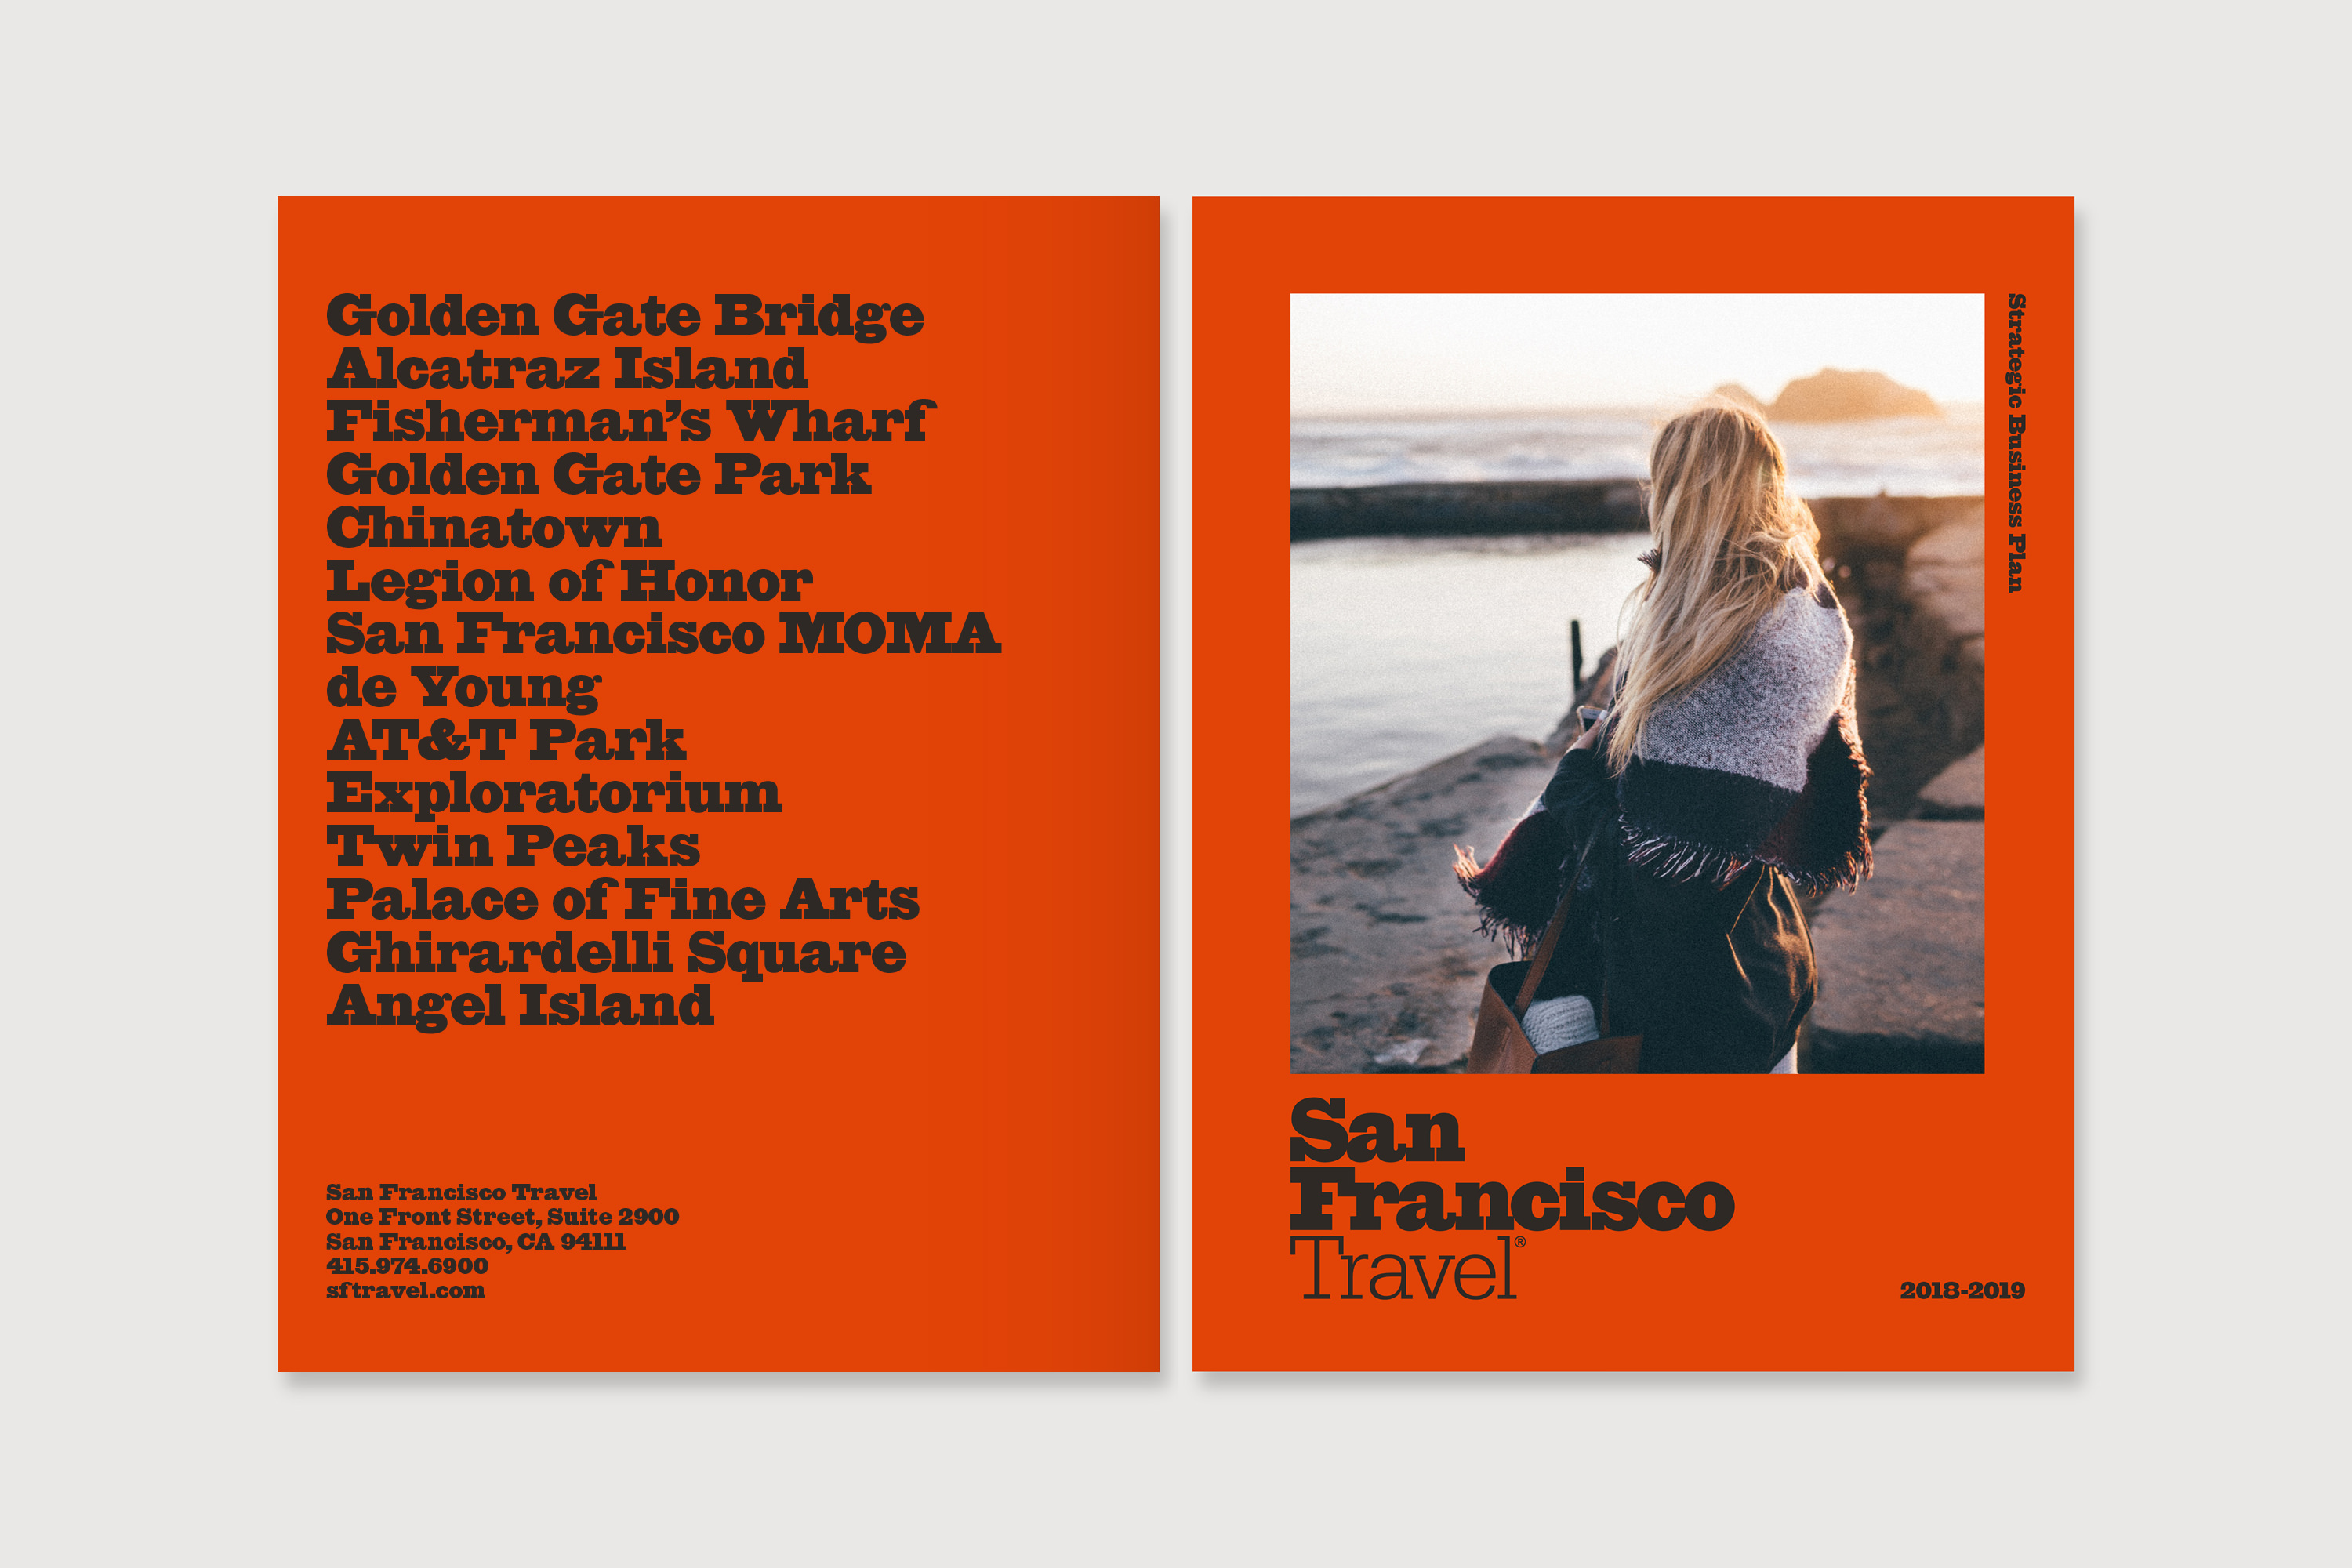 San Francisco Travel Strategic Businesses Plan 2018